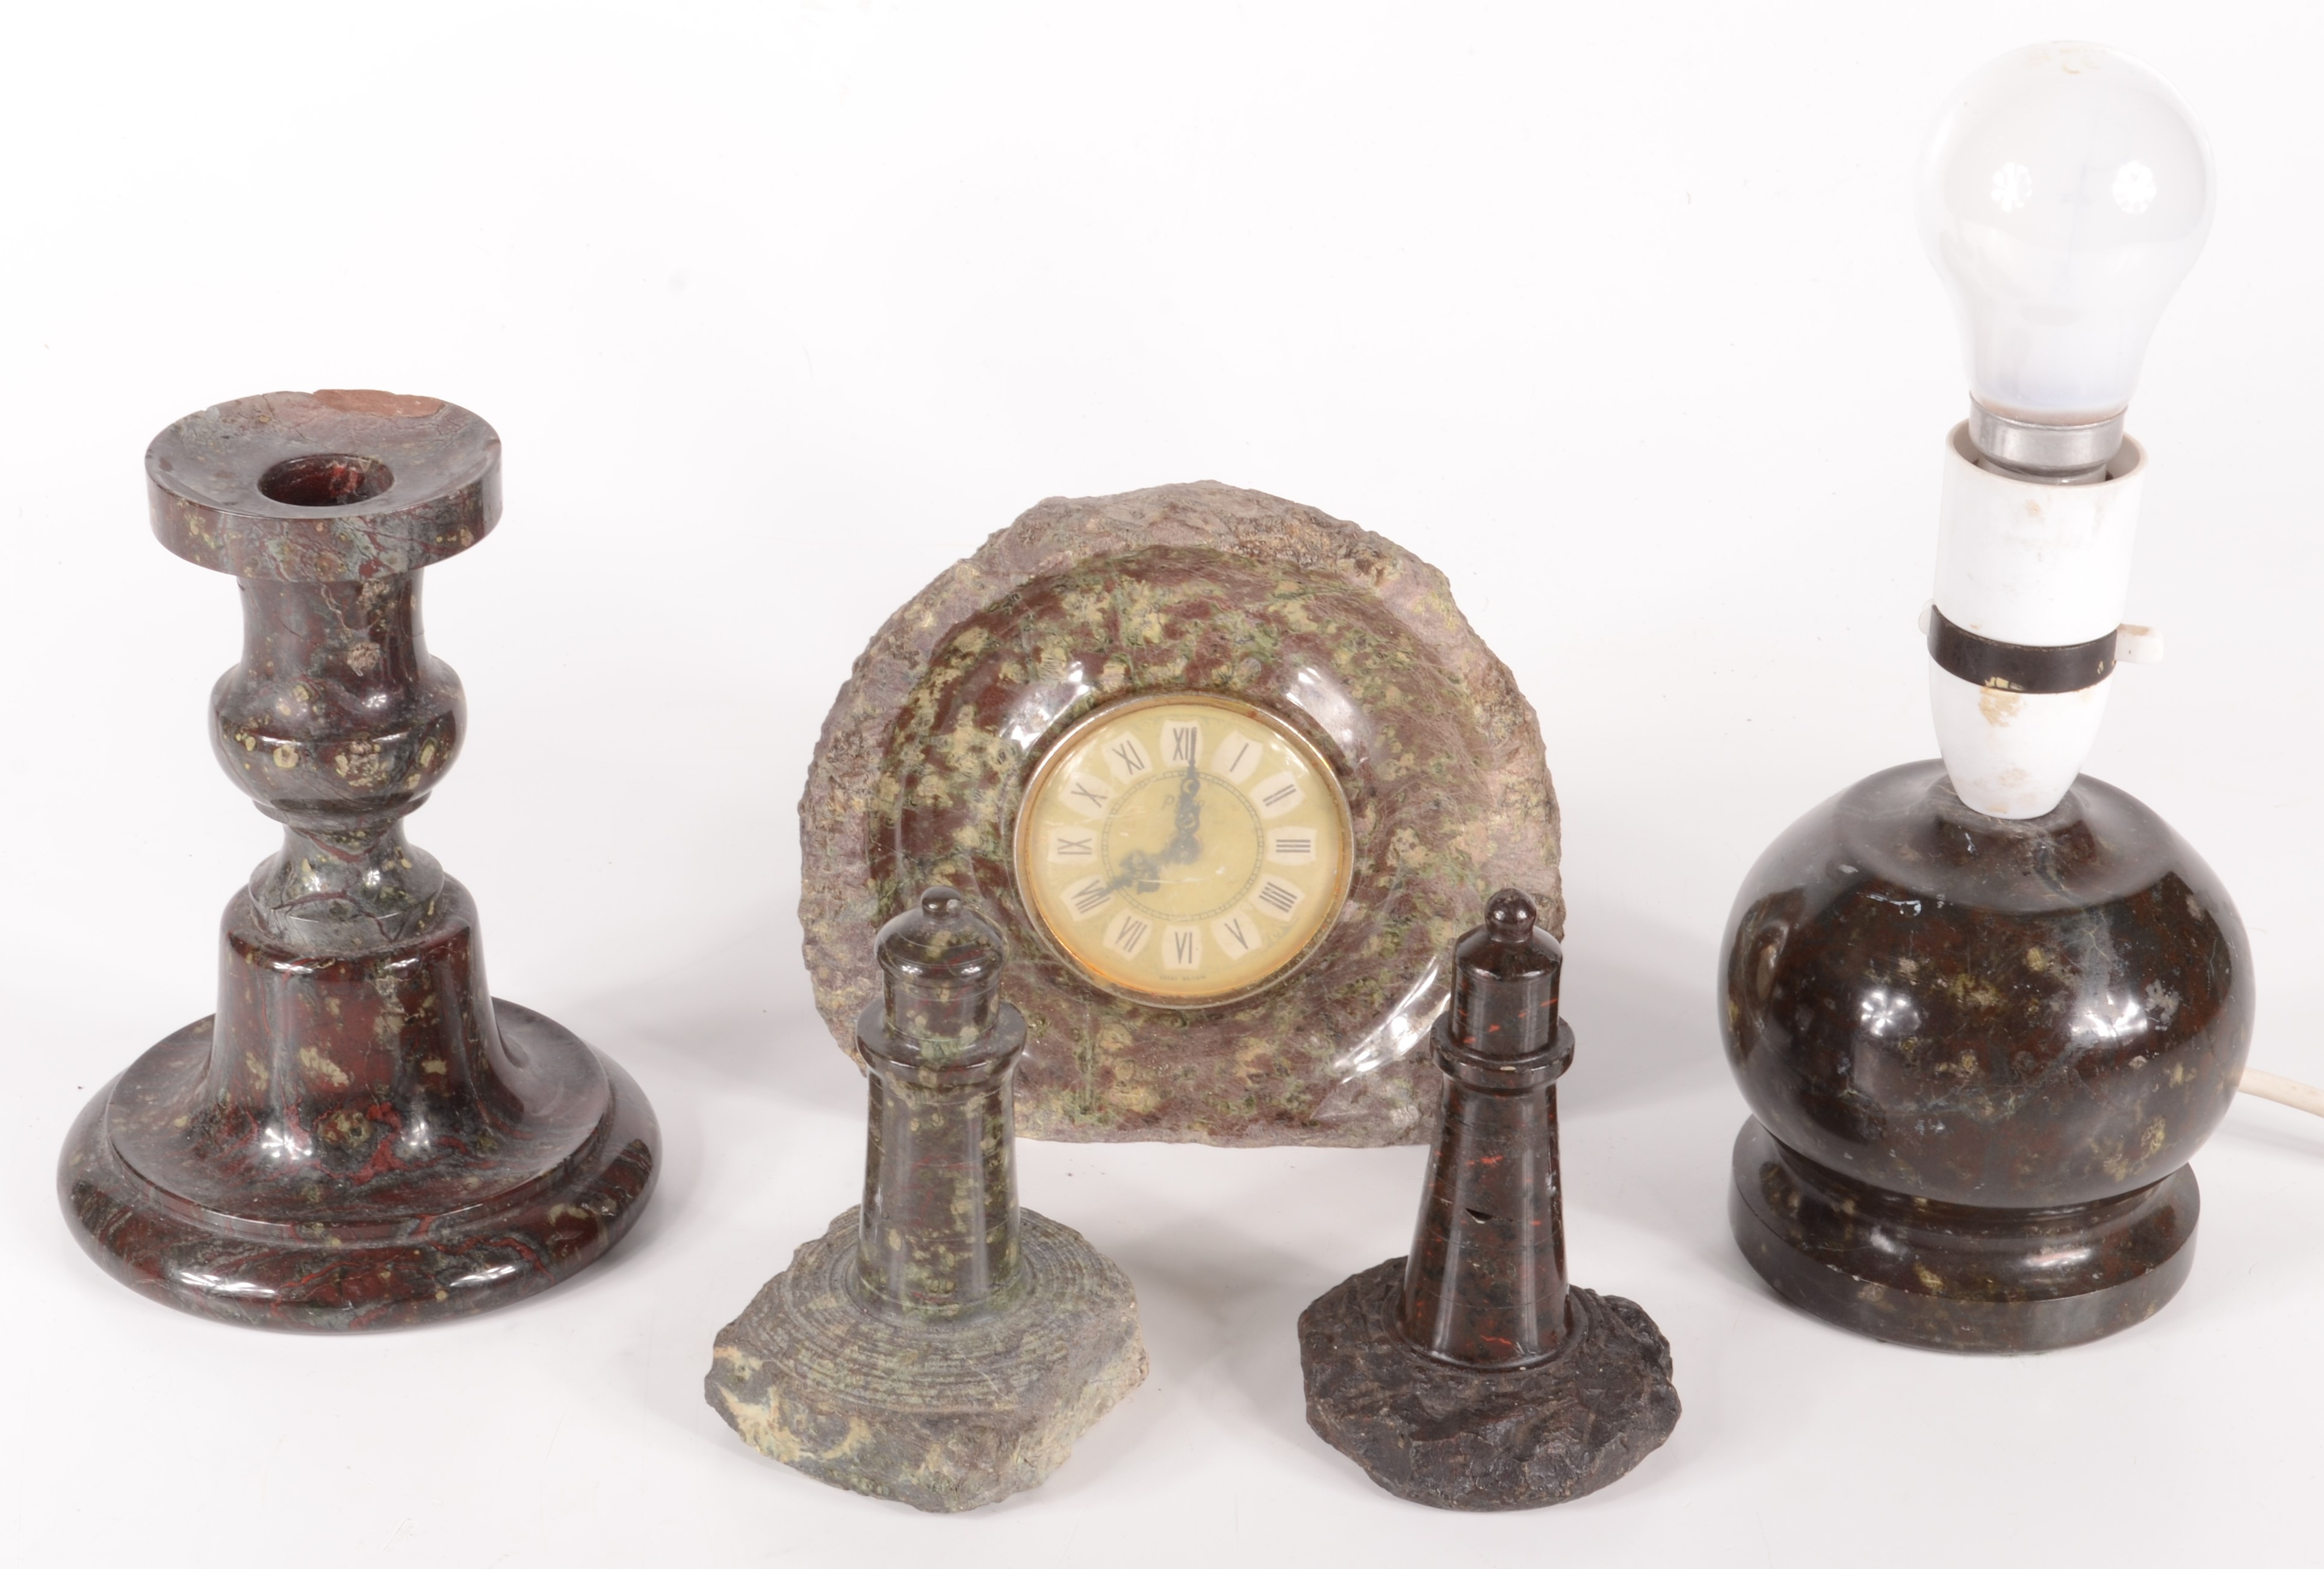 Lot 13 - Miscellaneous Cornish serpentine, to include a candlestick, height 15cm, a lamp base,